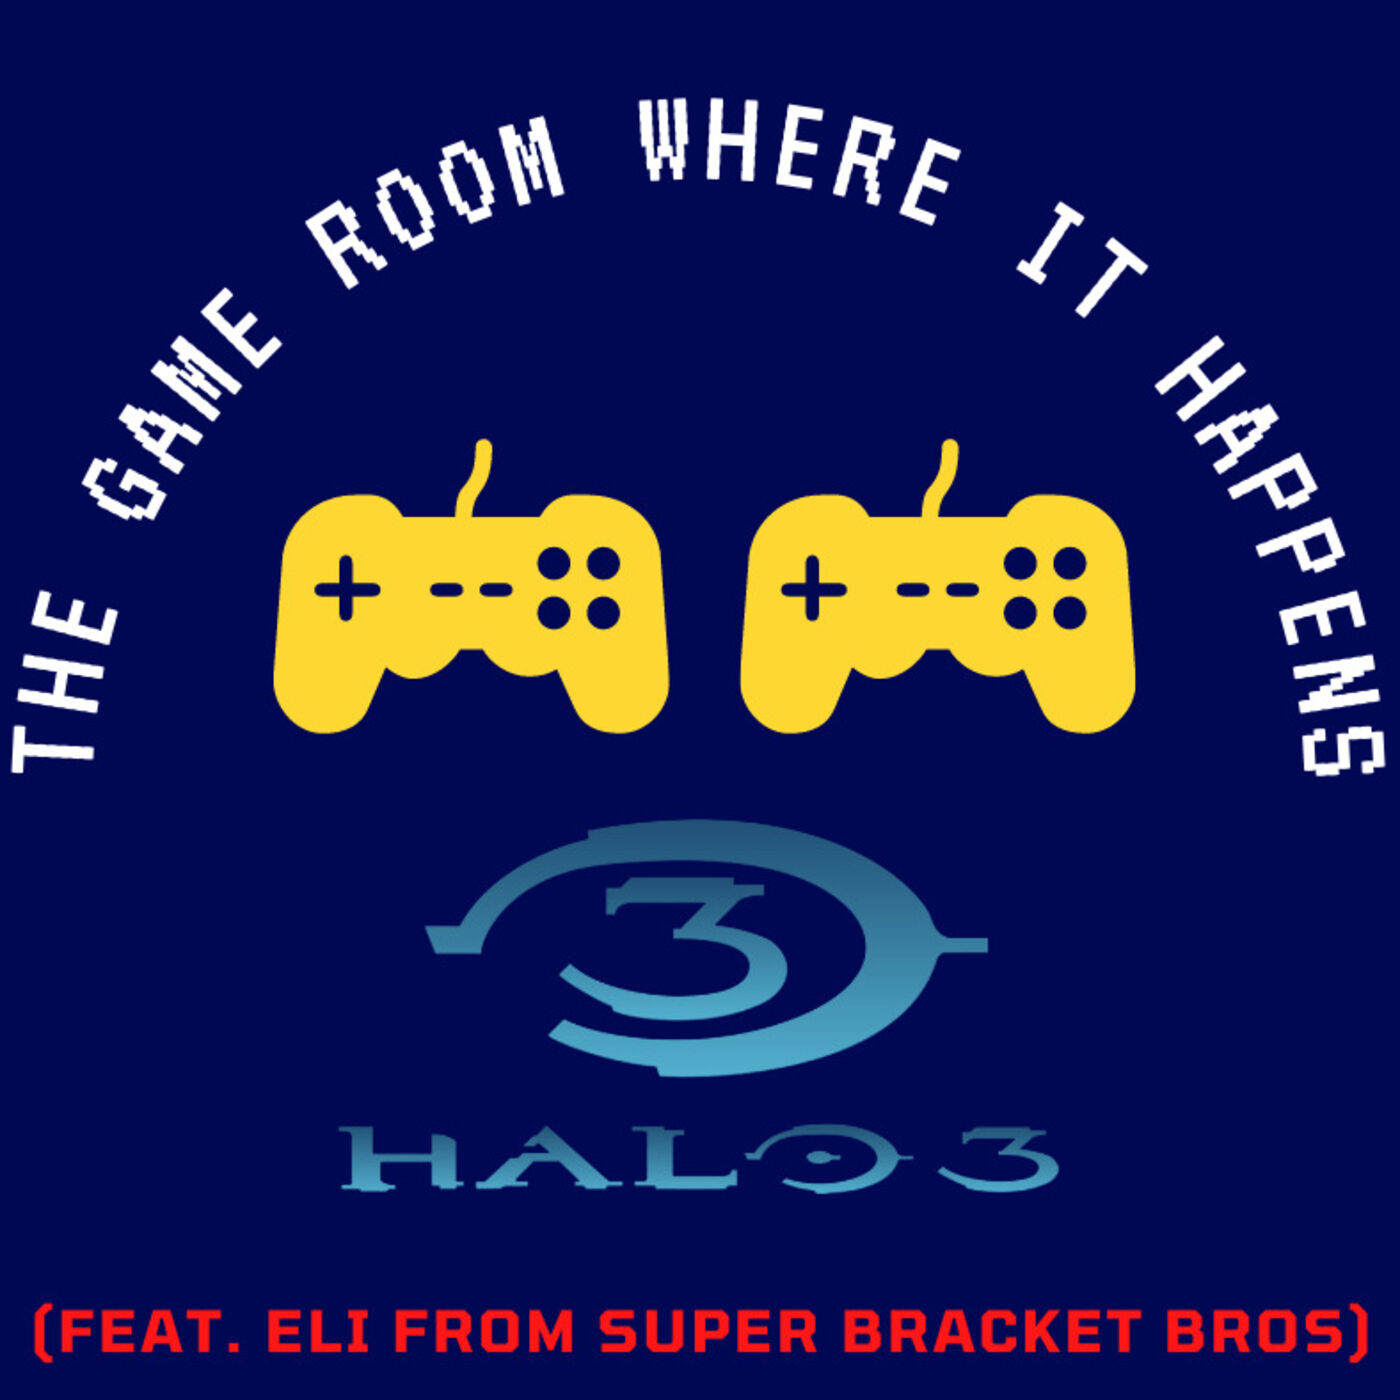 The Game Room Where It Happens - Halo 3 (Feat. Eli Stokes)